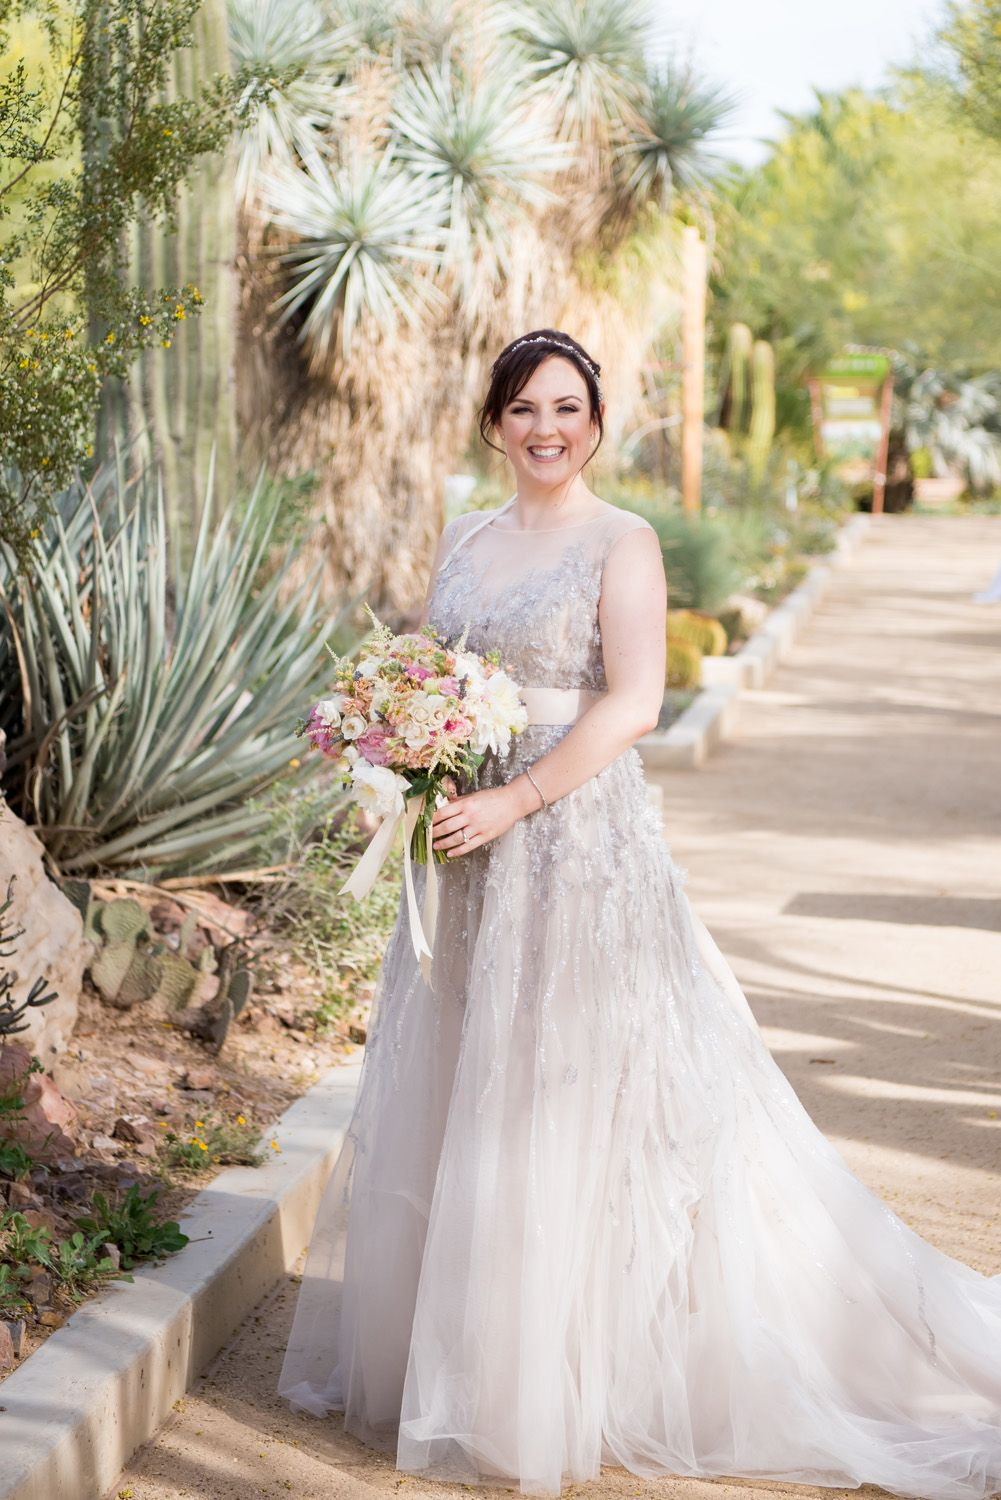 Vintage Style Wedding Dress From Bhldn Las Vegas Wedding Ideas Vegas Wedding Dress Vintage Style Wedding Dresses Grey Wedding Dress